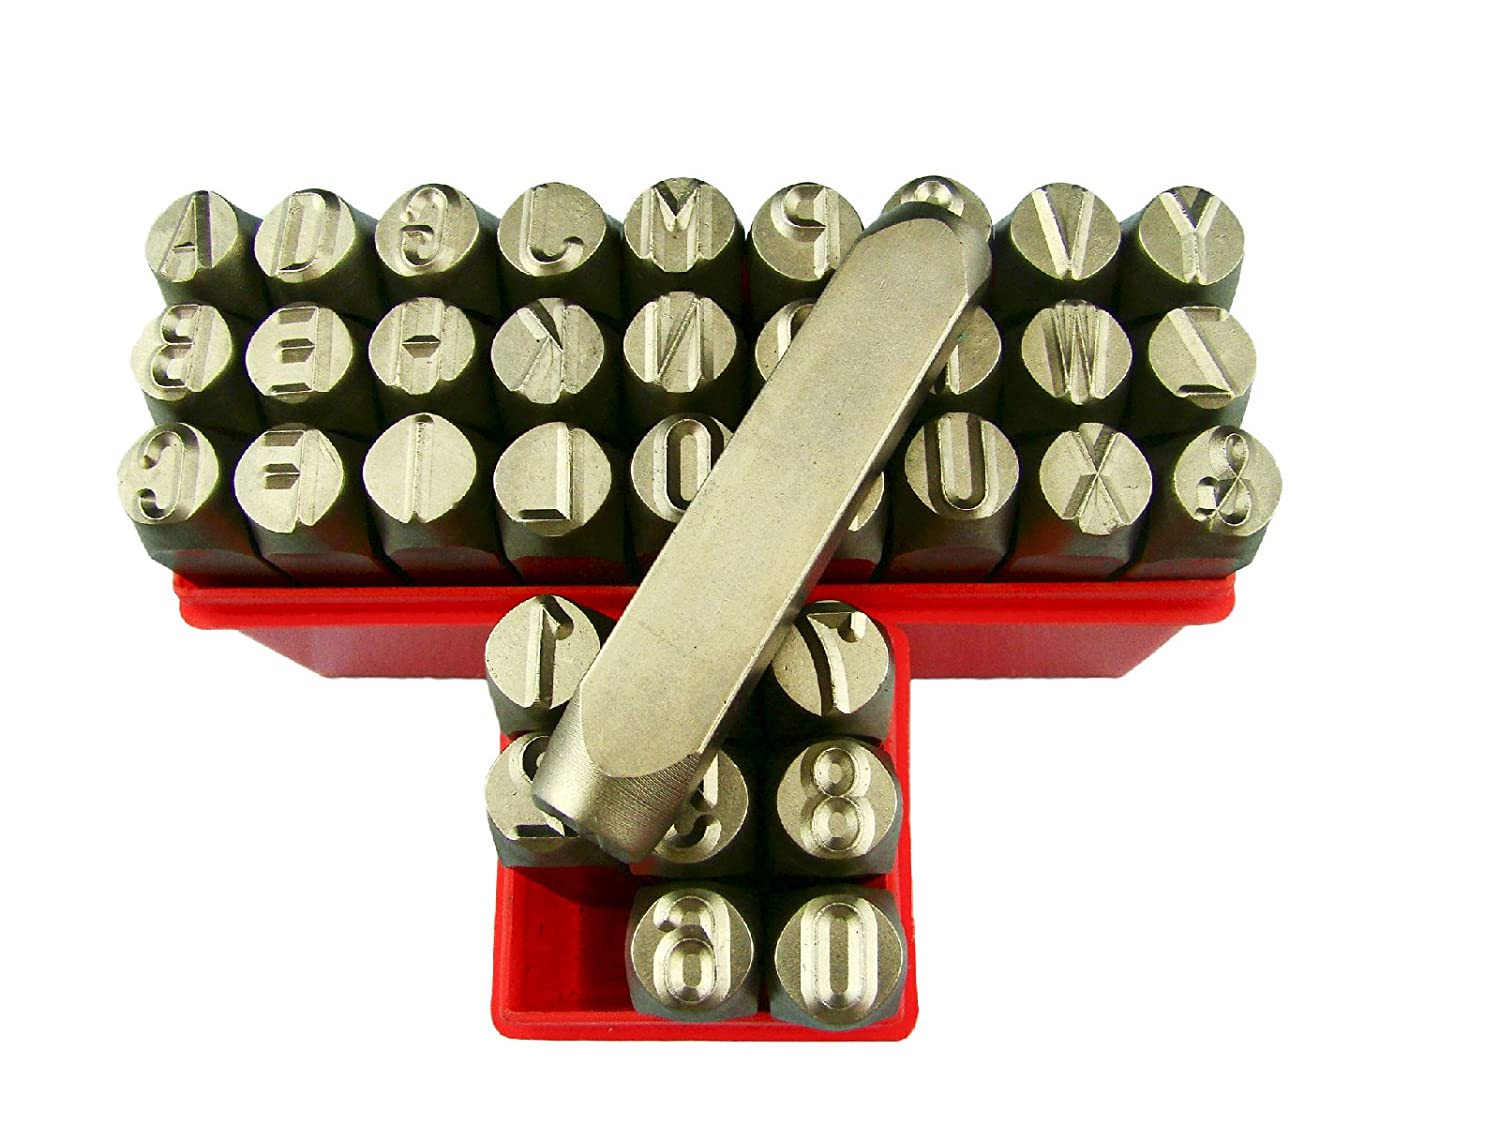 3//8 10MM Letter /& Number Punch Stamp Set Metal-Steel-Hand A-ZBIG SIZE 36Pcs